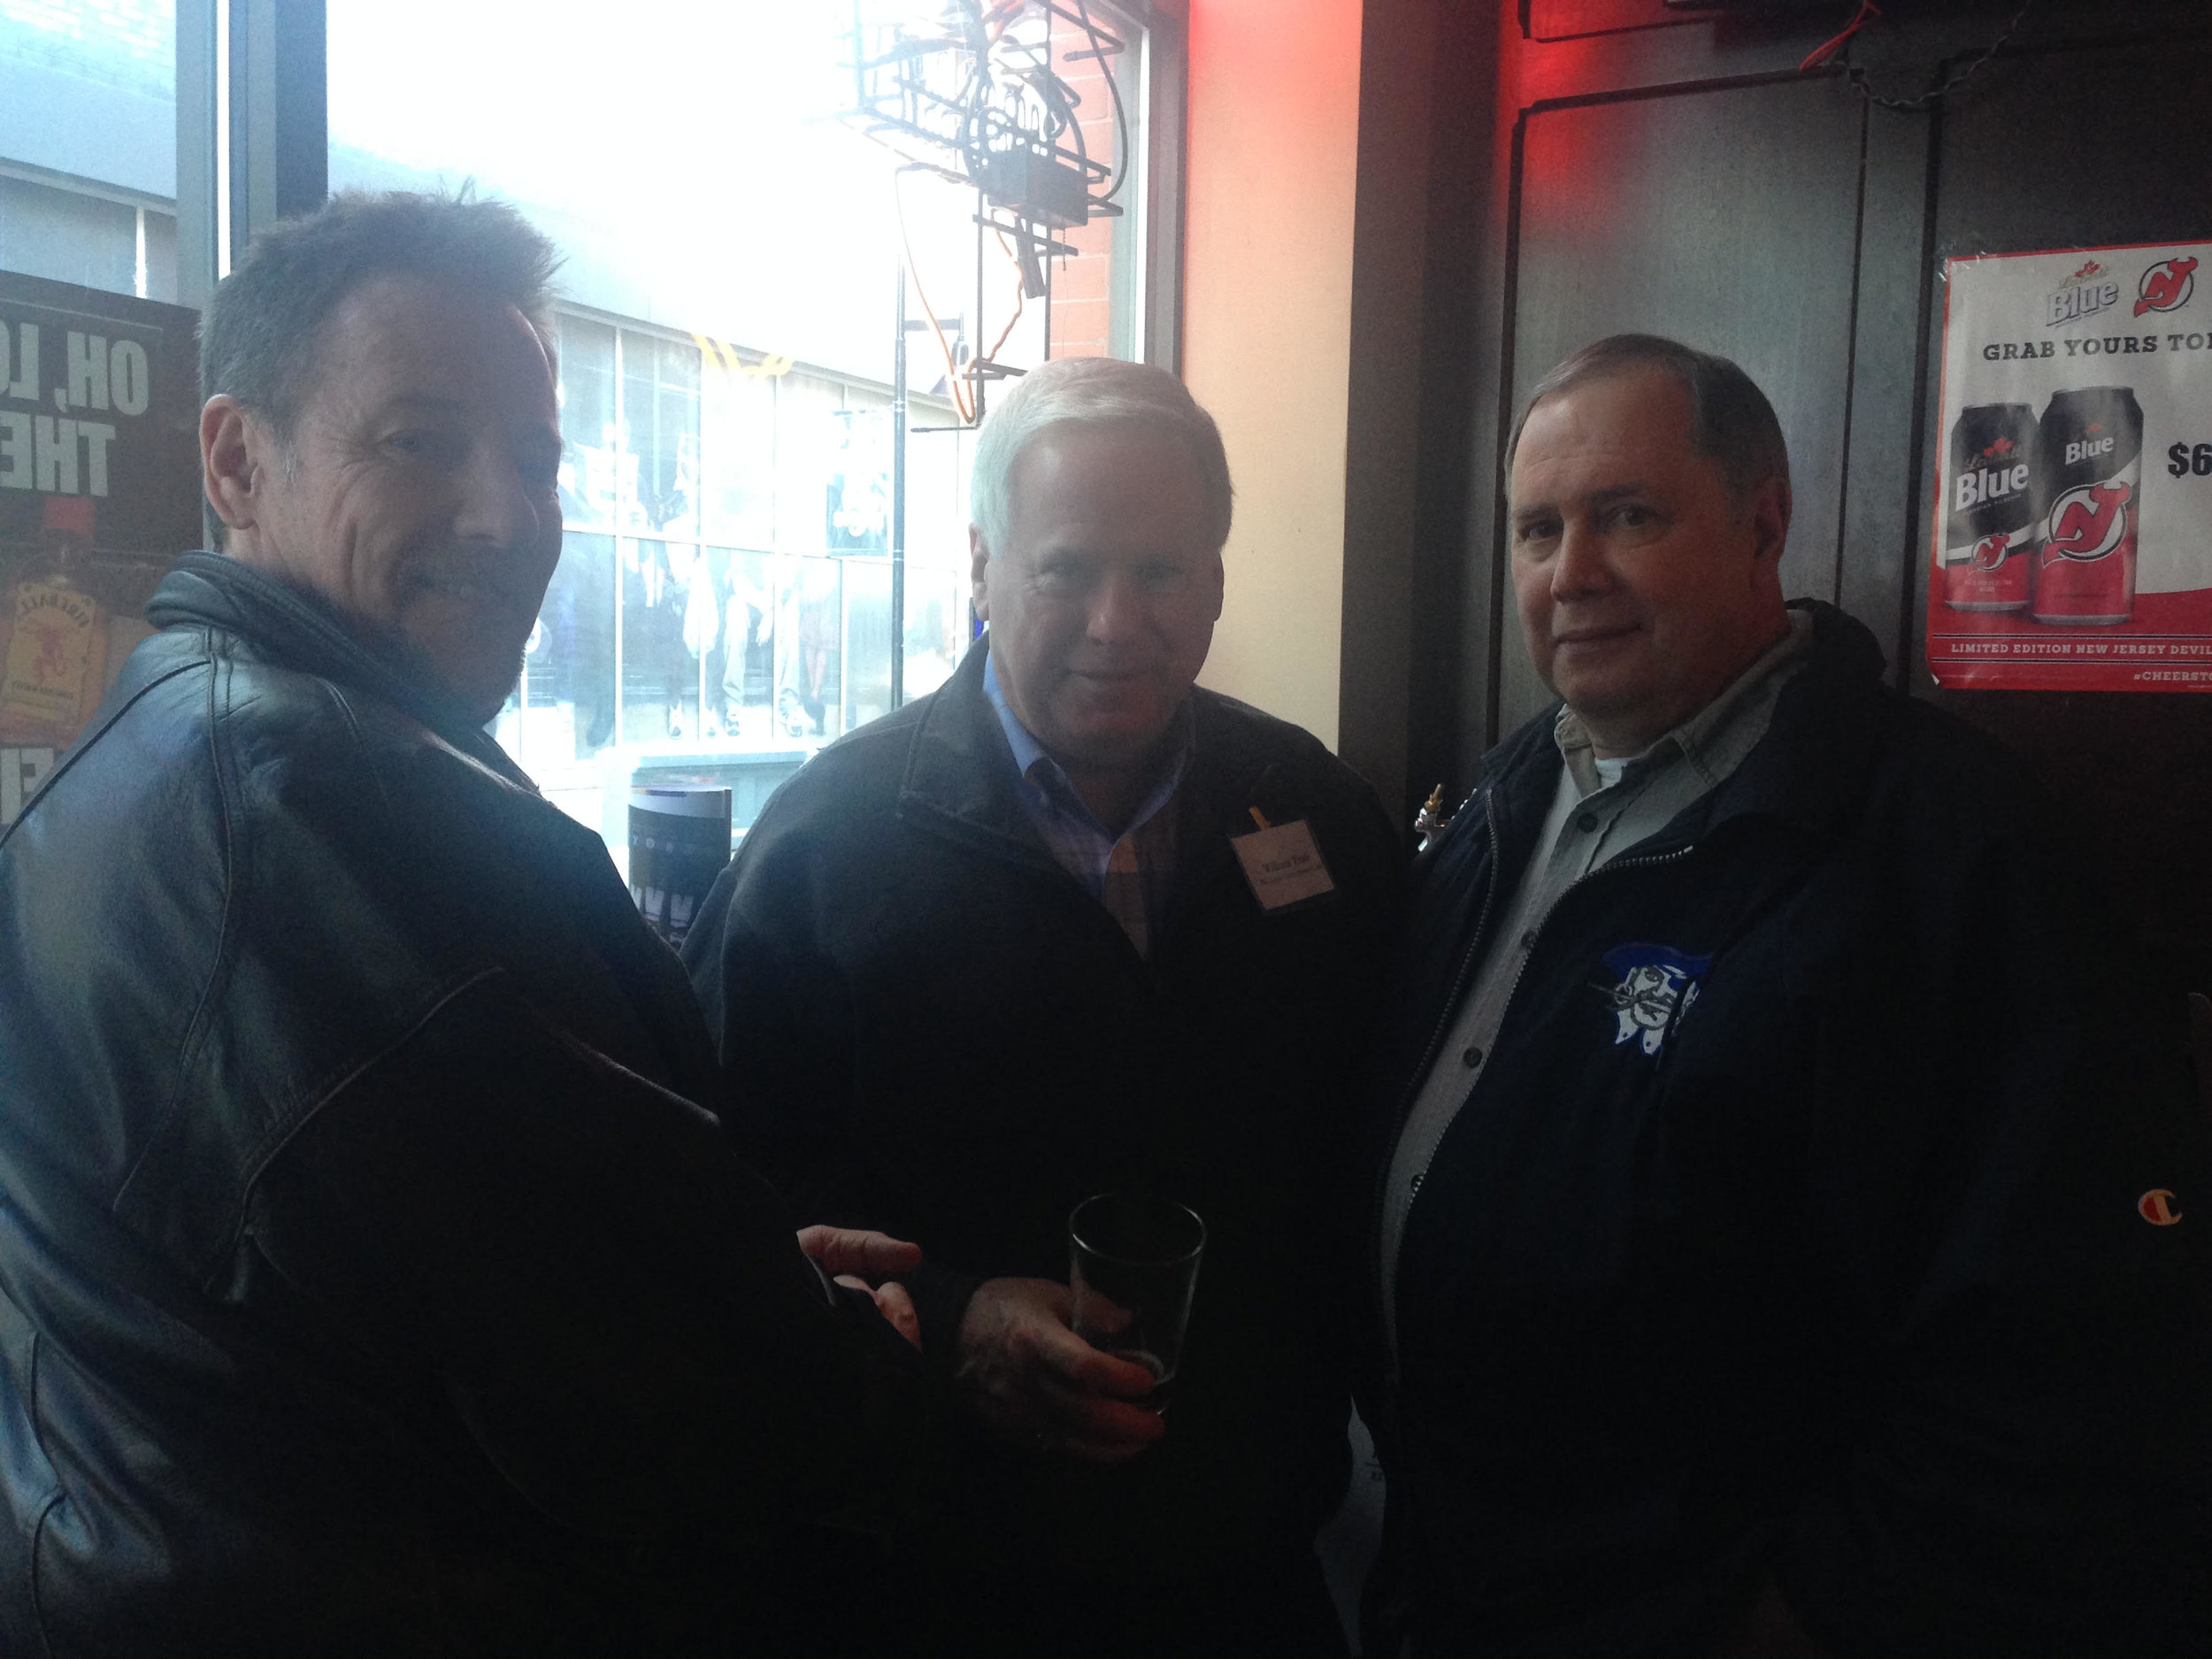 John O'Donnell, Gerry Lenihan and William J after the game